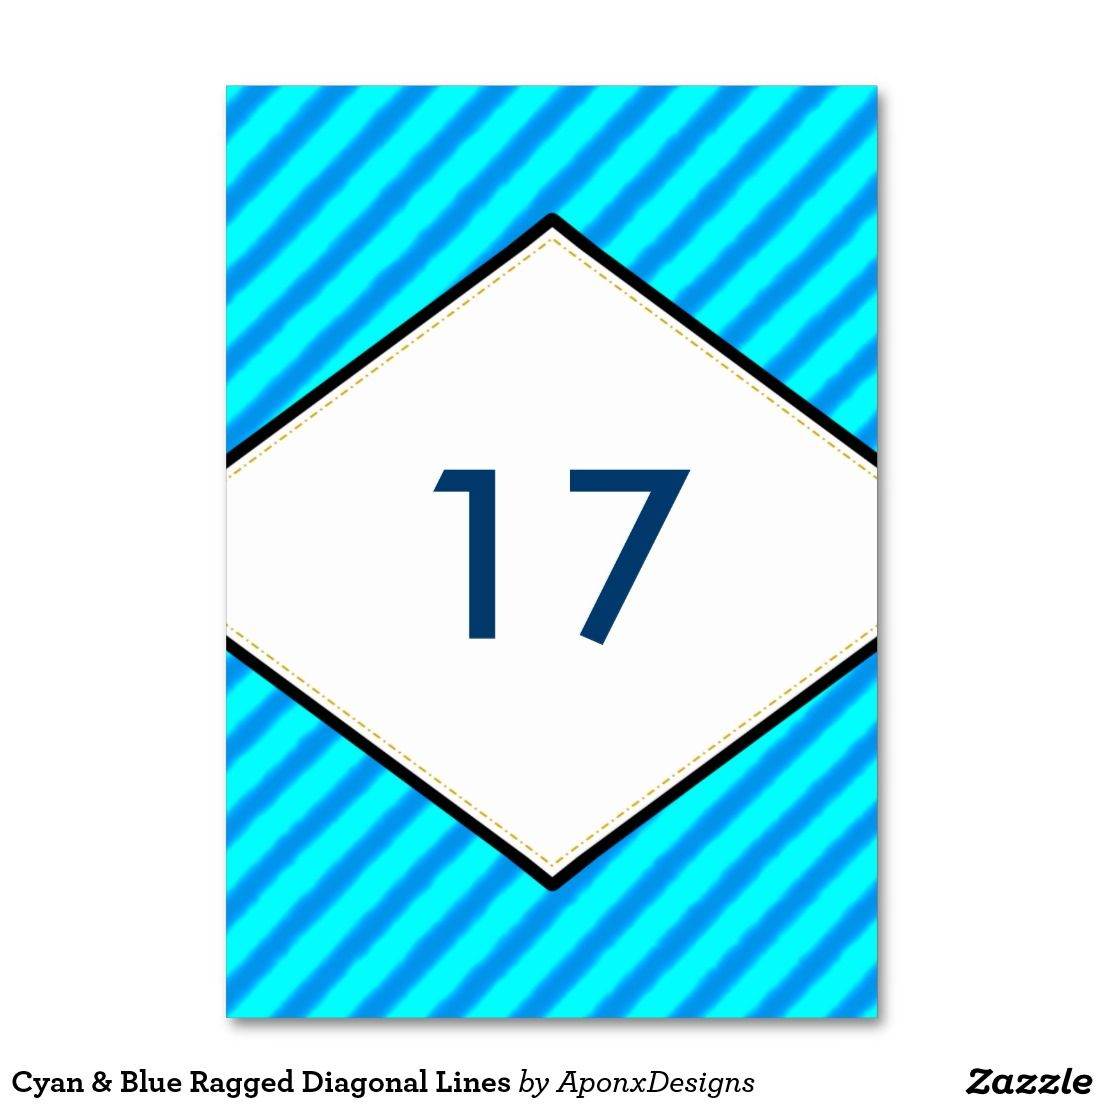 Cyan & Blue Ragged Diagonal Lines Table Number Card Design